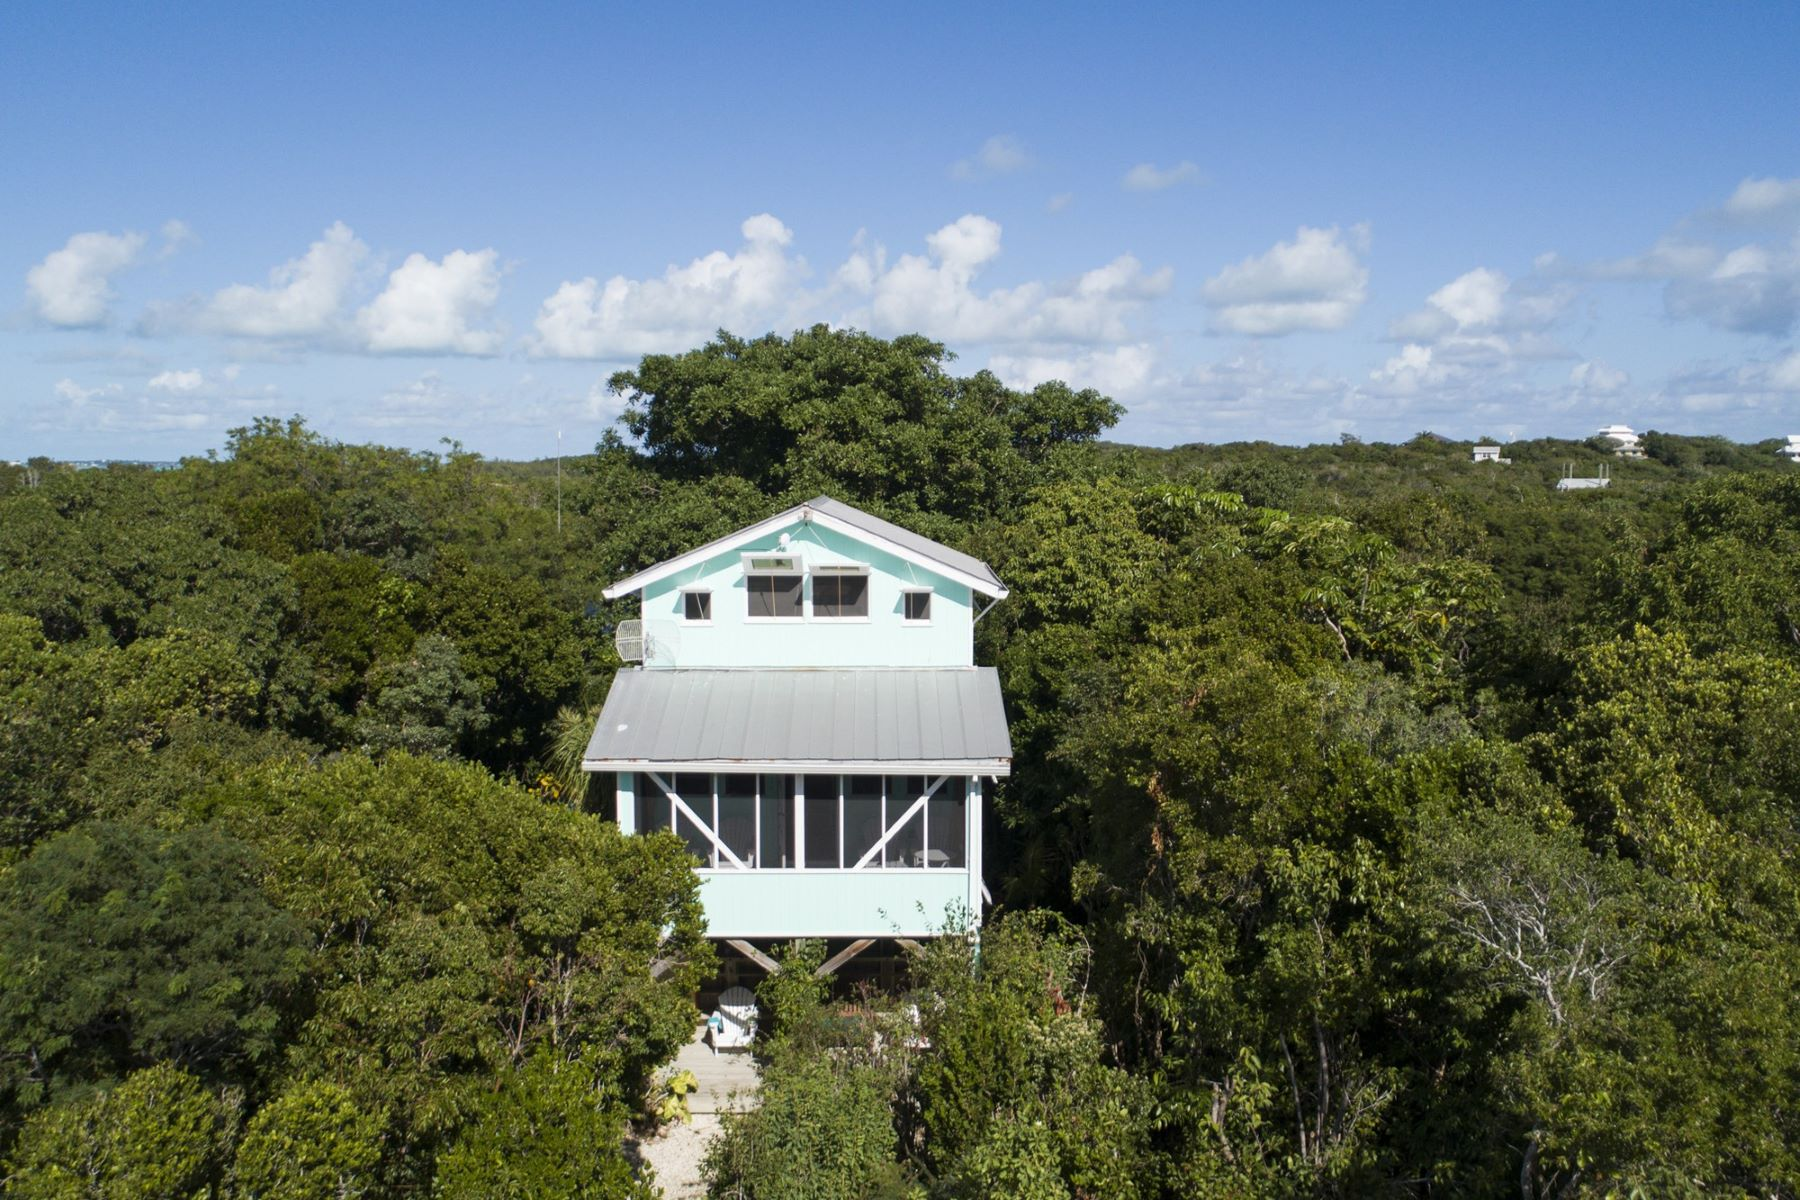 Single Family Home for Sale at Coconut Cottage Abaco Ocean Club, Lubbers Quarters, Abaco Bahamas